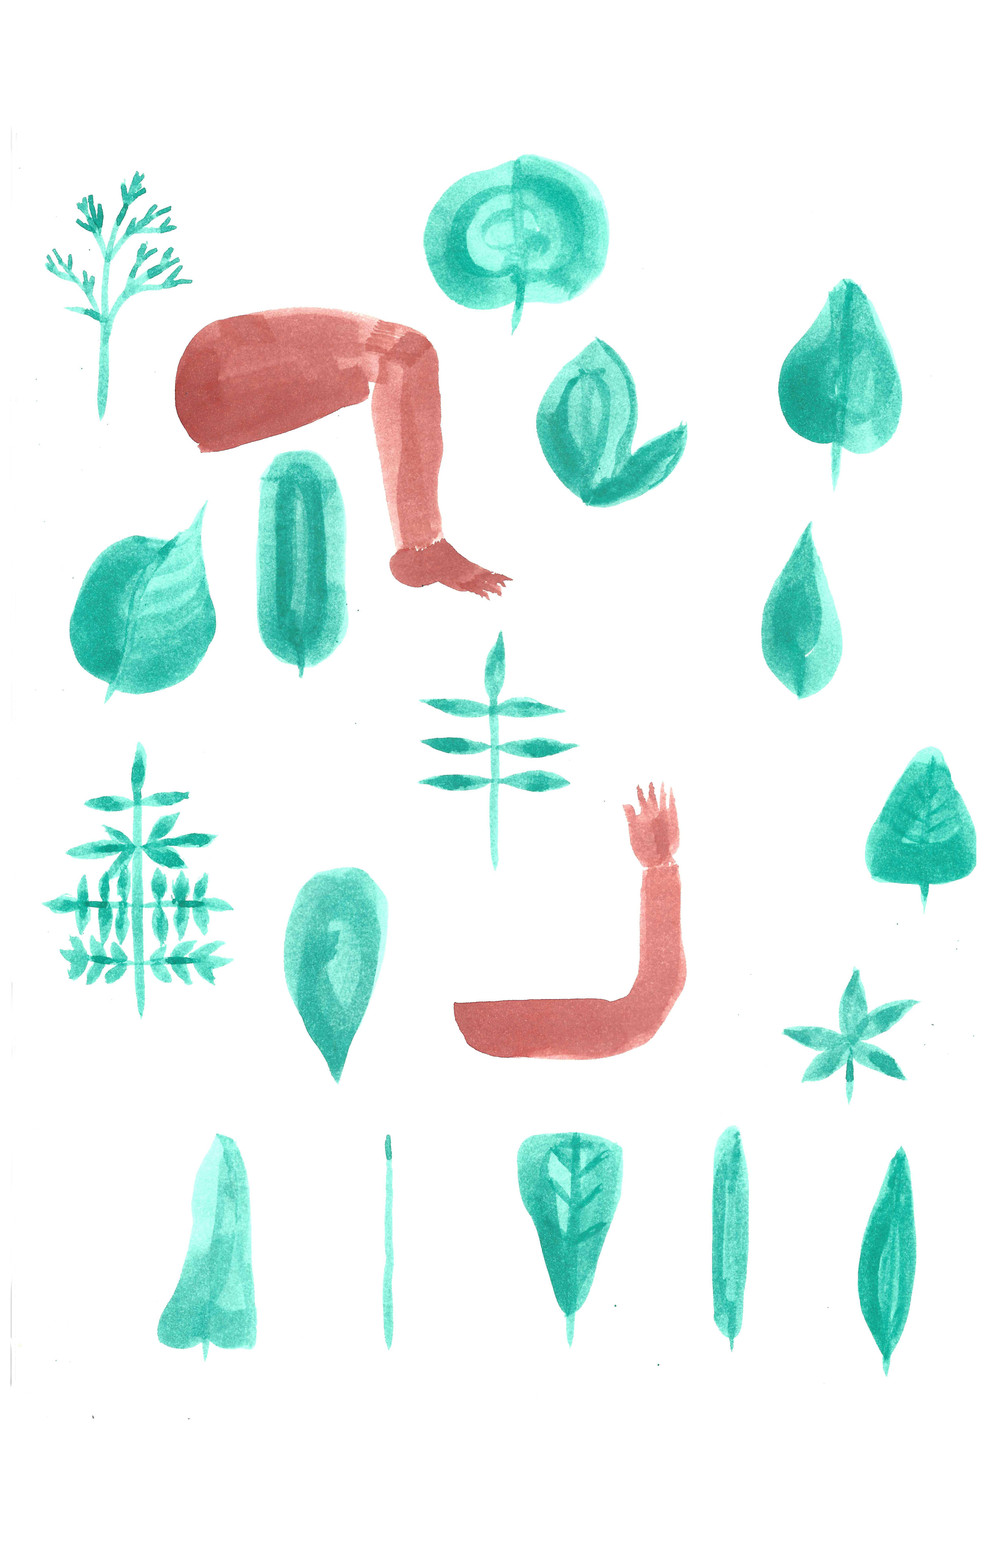 Leaf Shapes and Limbs